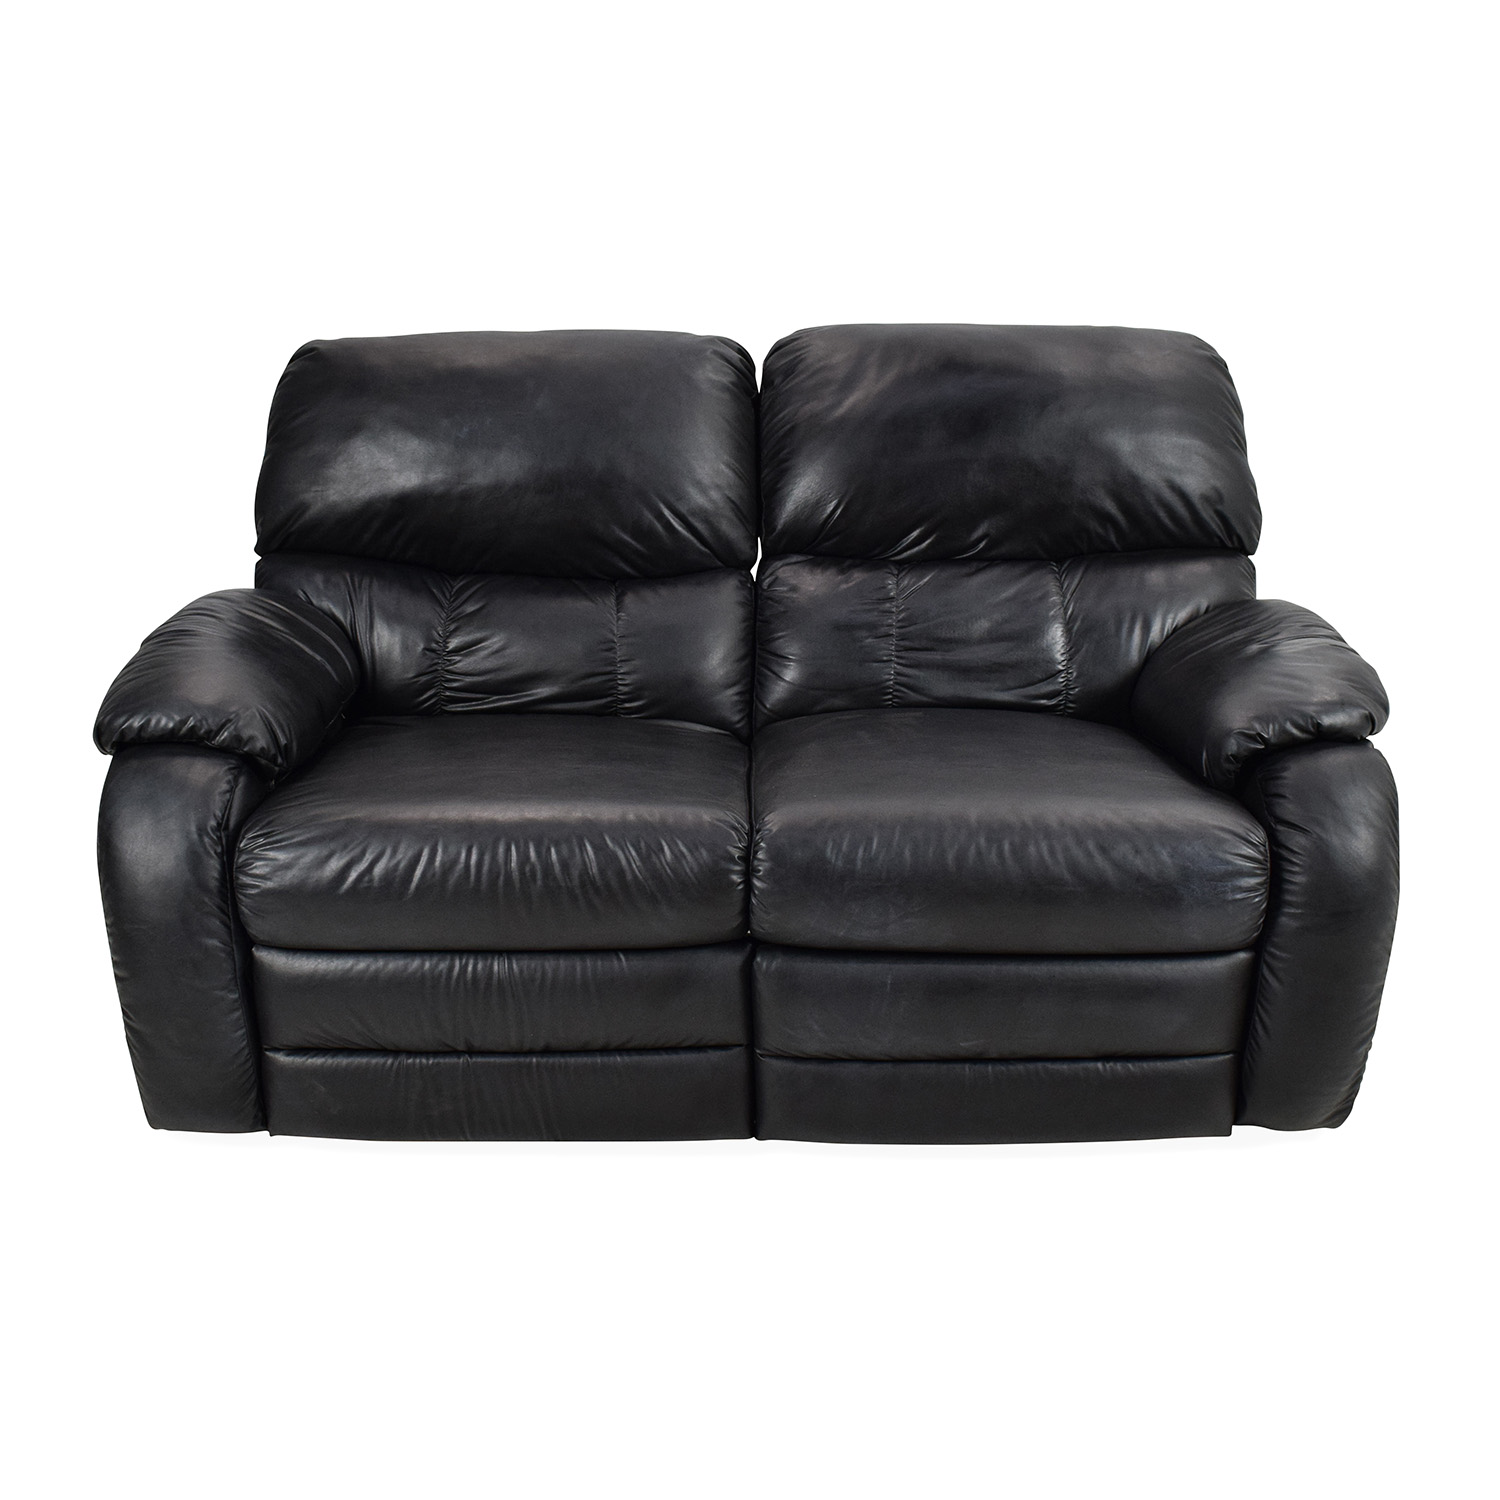 Used Reclining Sofa Used Black Leather Reclining Sofa Kendrys Furniture Used Leather